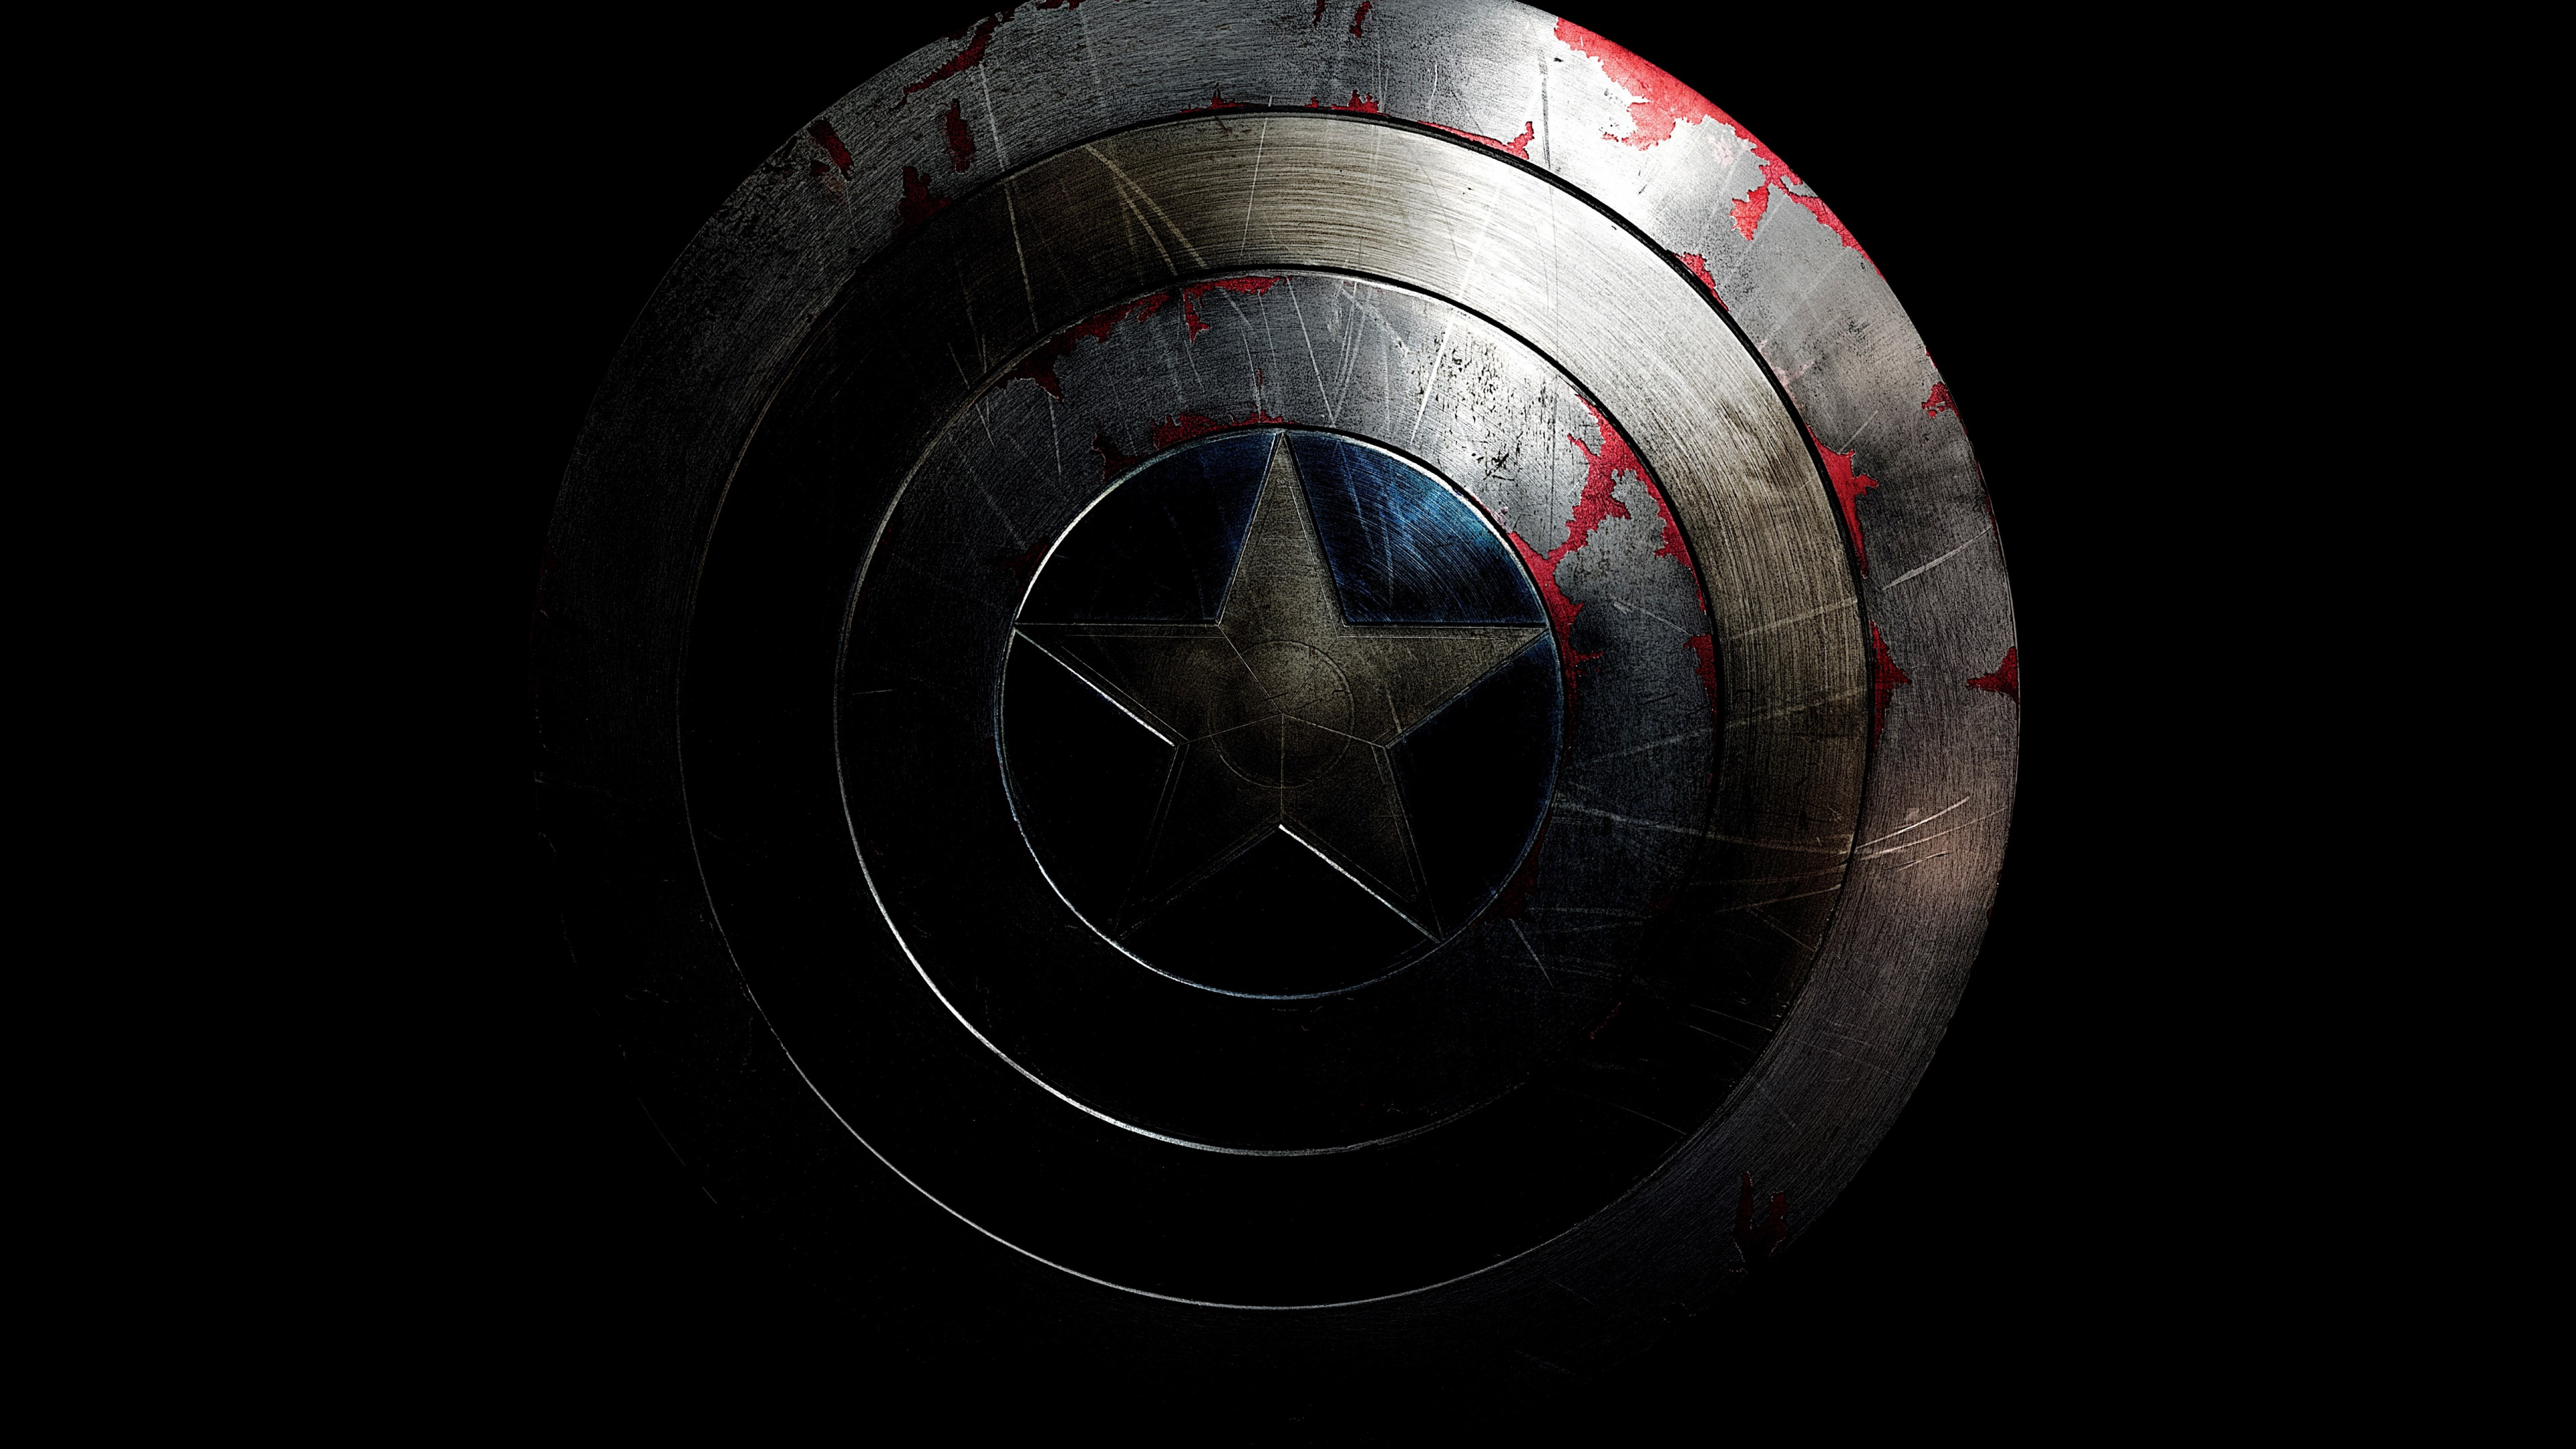 The shield of Captain America wallpaper 3840x2160